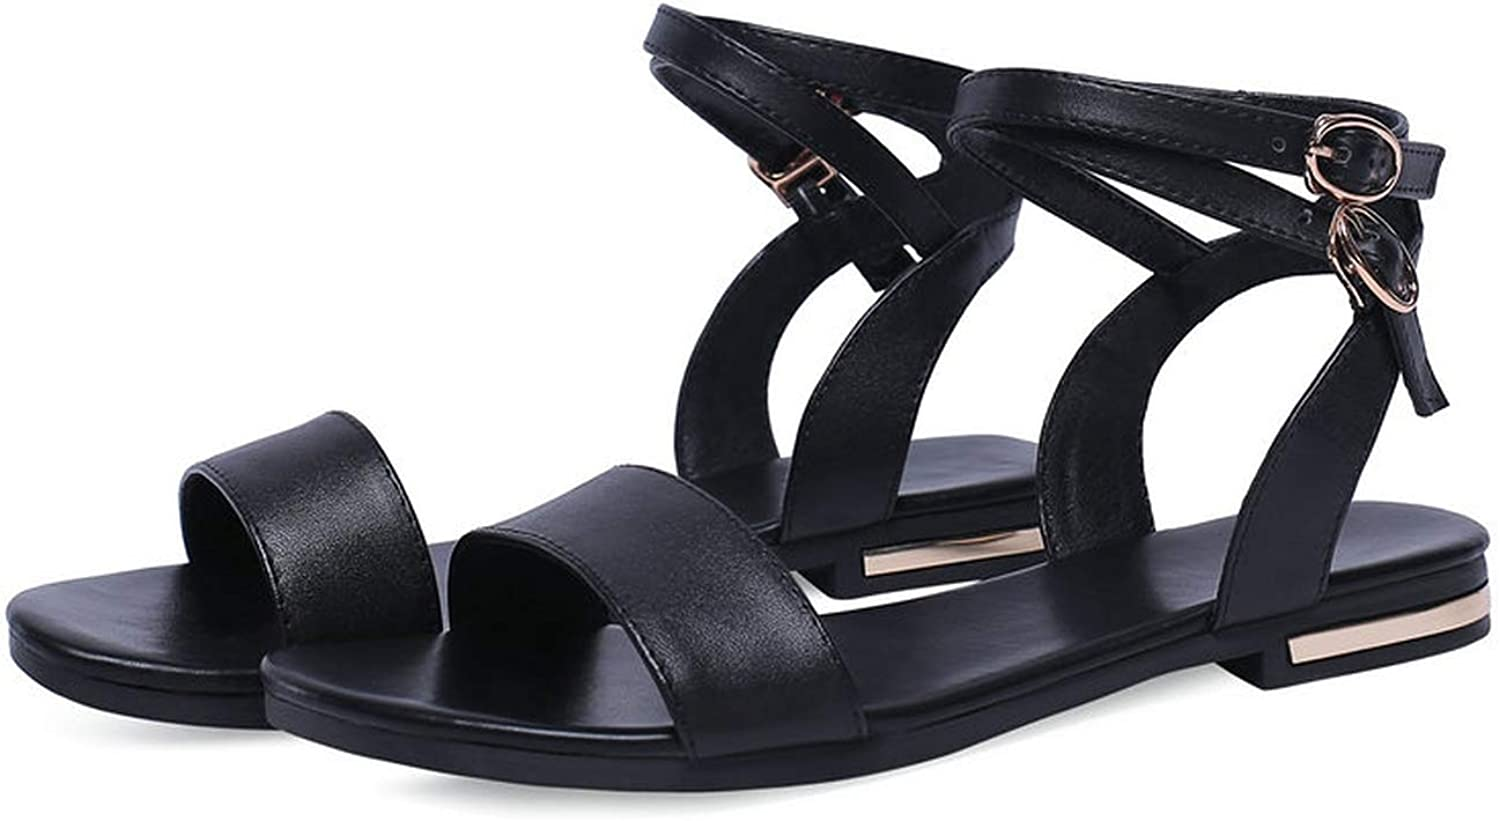 Women Sandals Square Low Heel Champagne PU Leather,